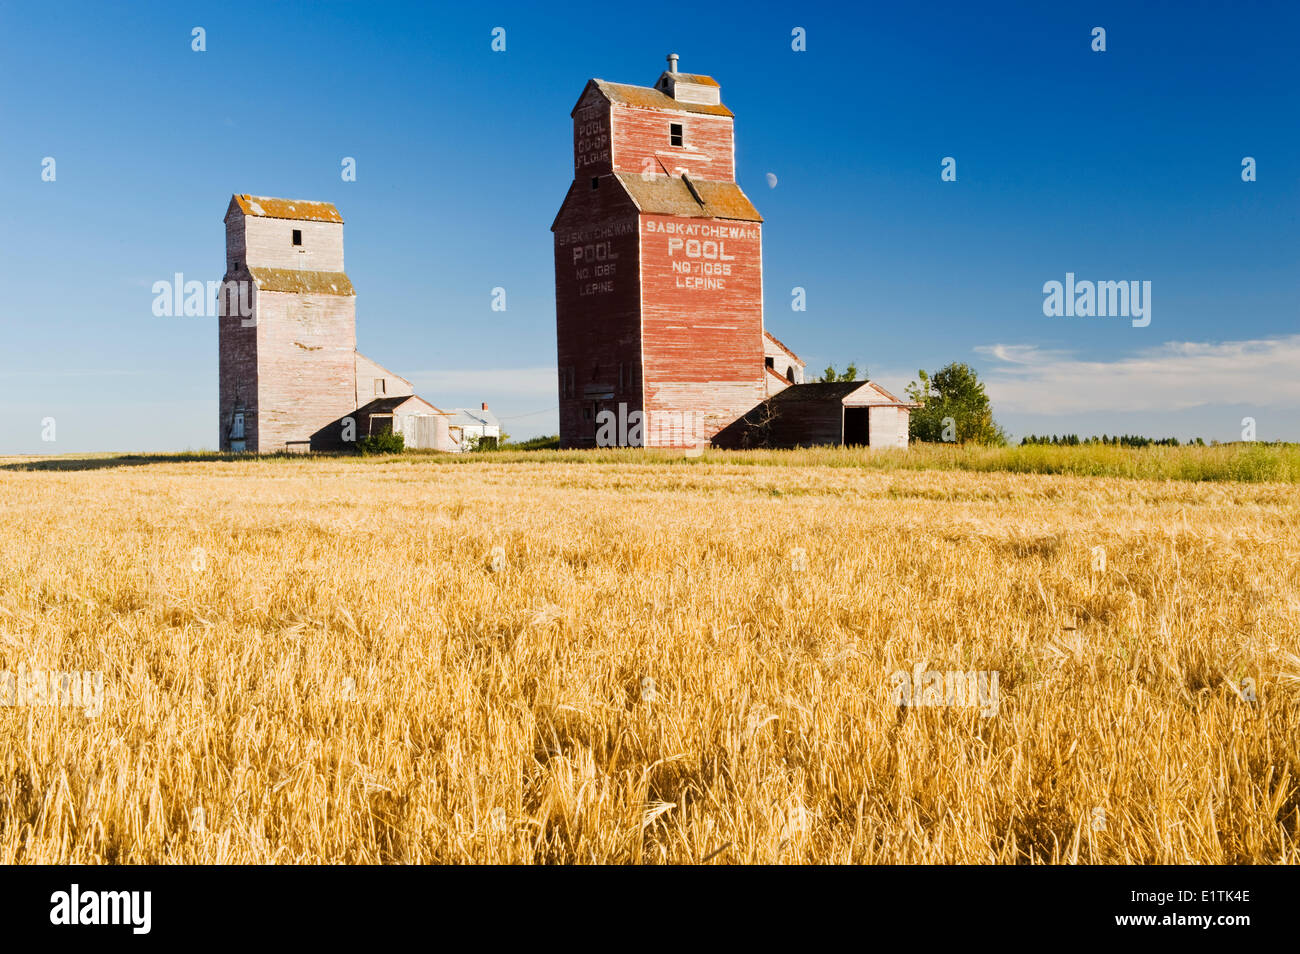 barley field and grain elevators, abandoned town of Lepine, Saskatchewan, Canada - Stock Image